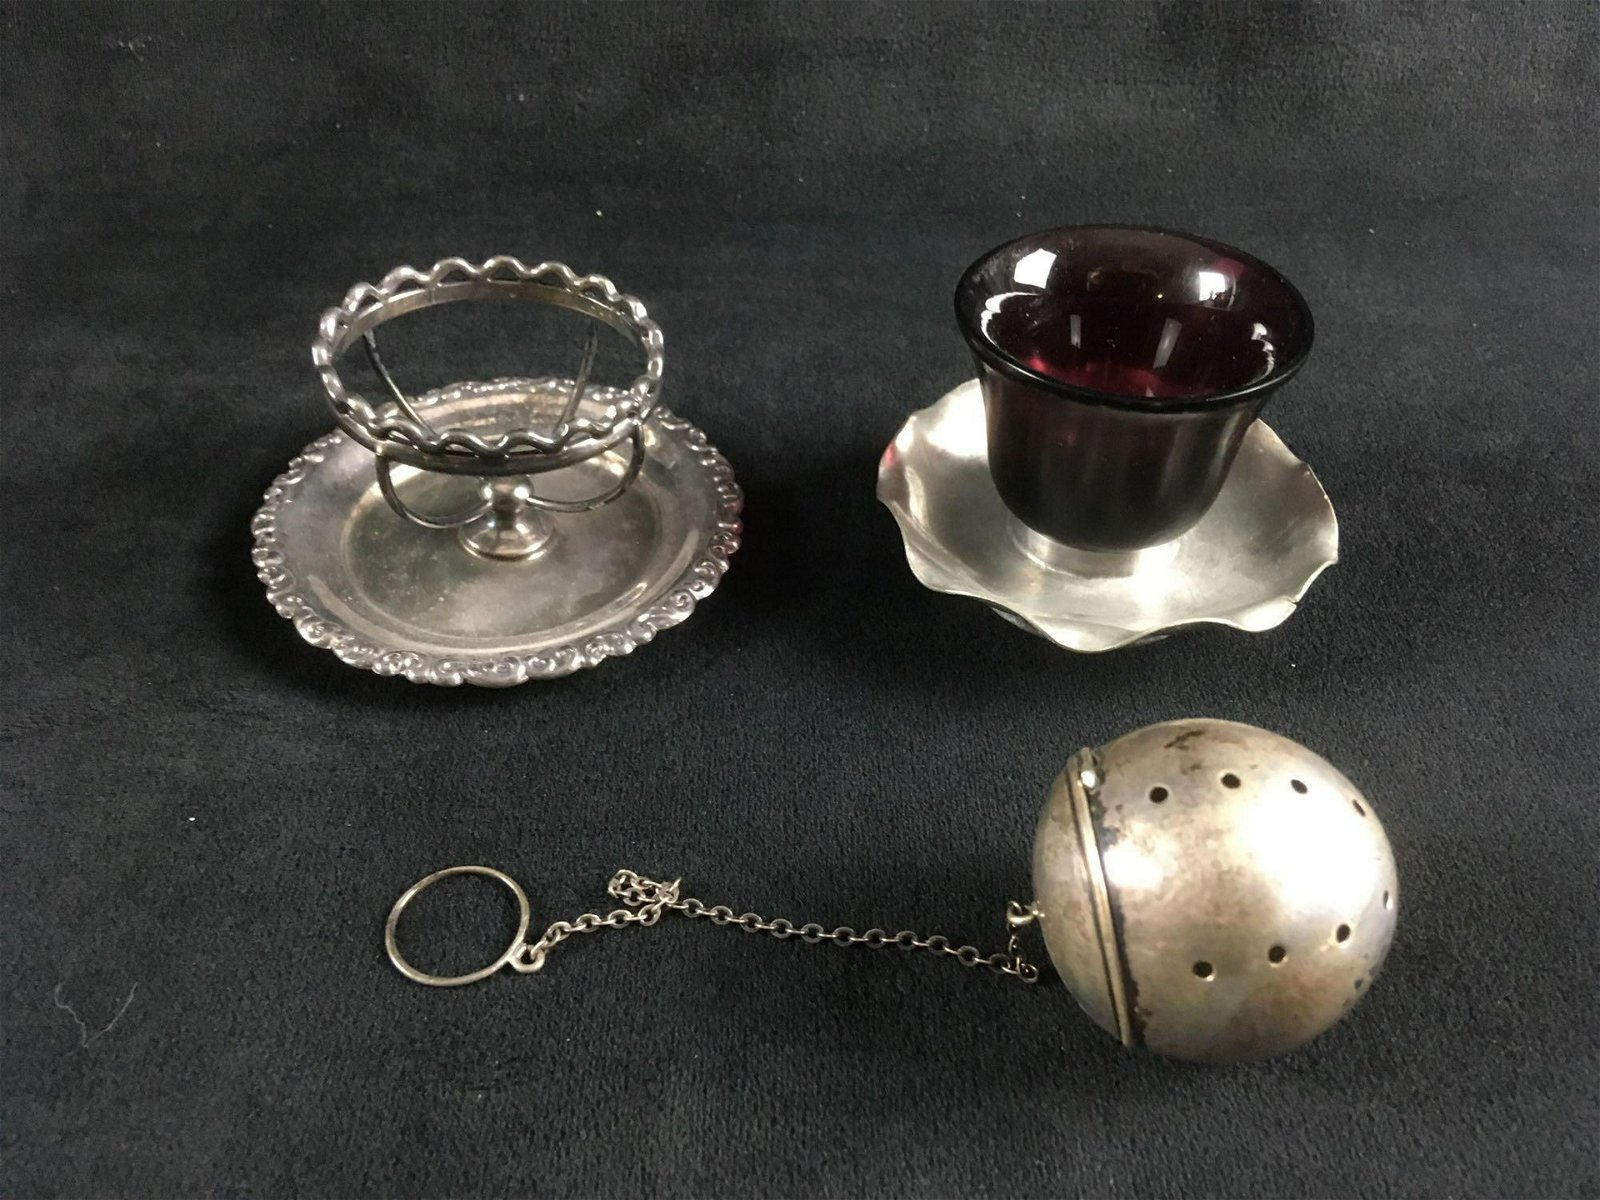 Vintage Breakfast Set of Tea Infuser and Egg Stand and